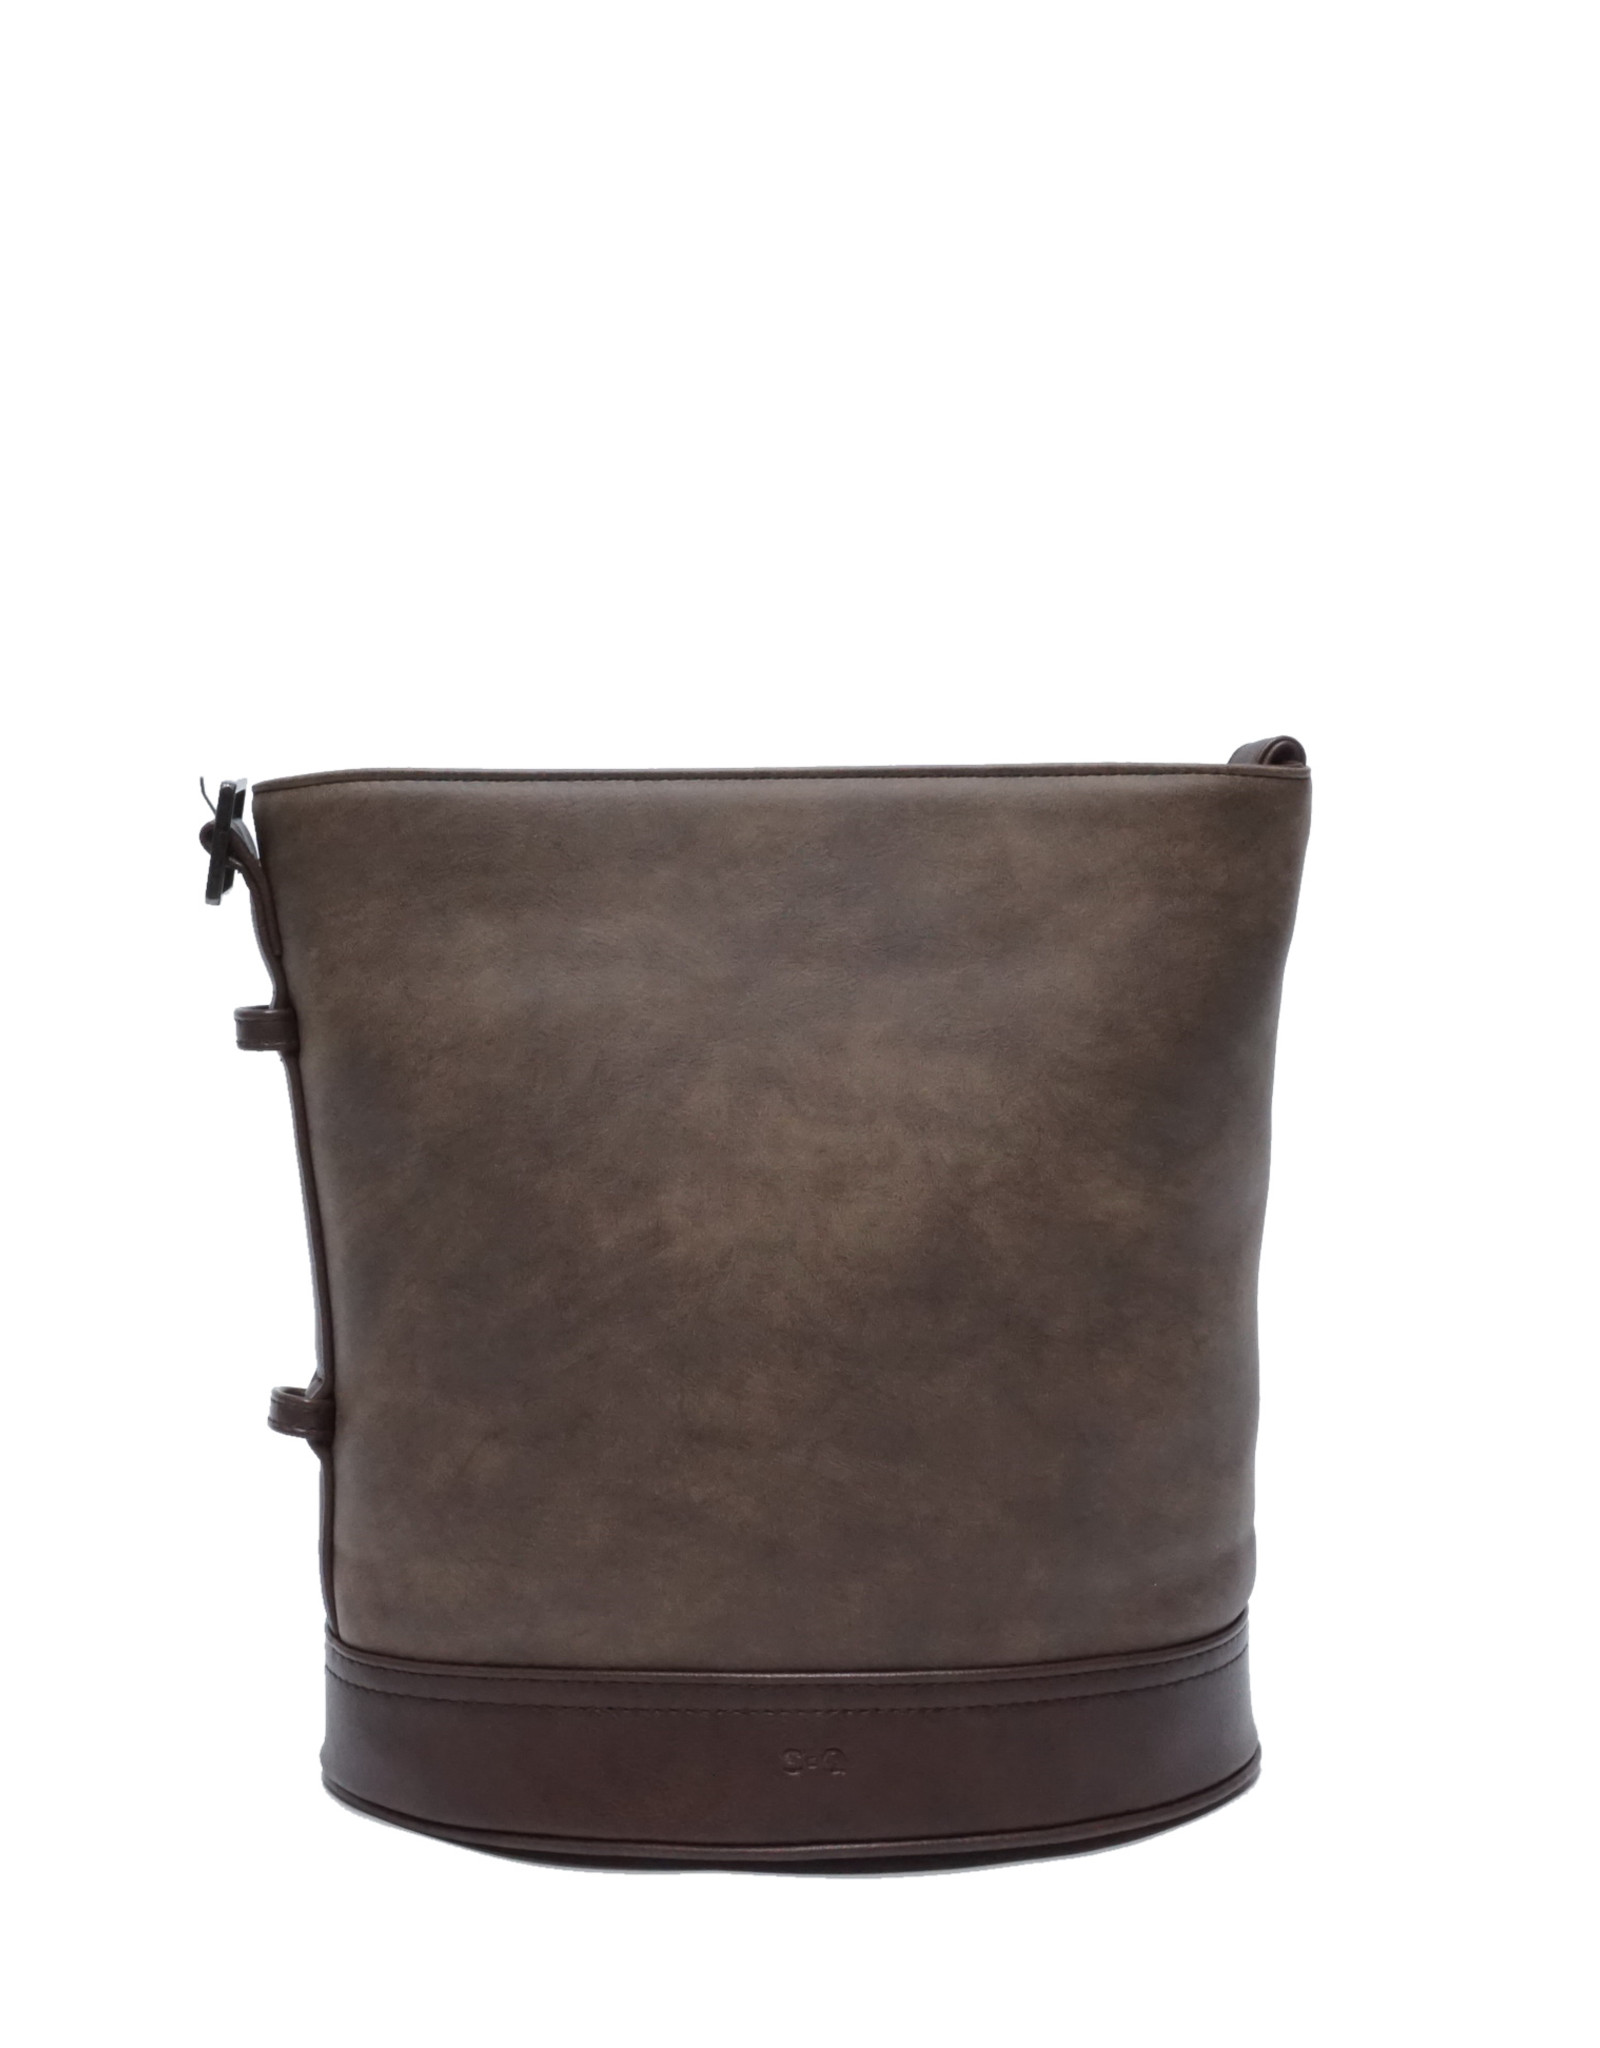 Alessi Hobo- brown